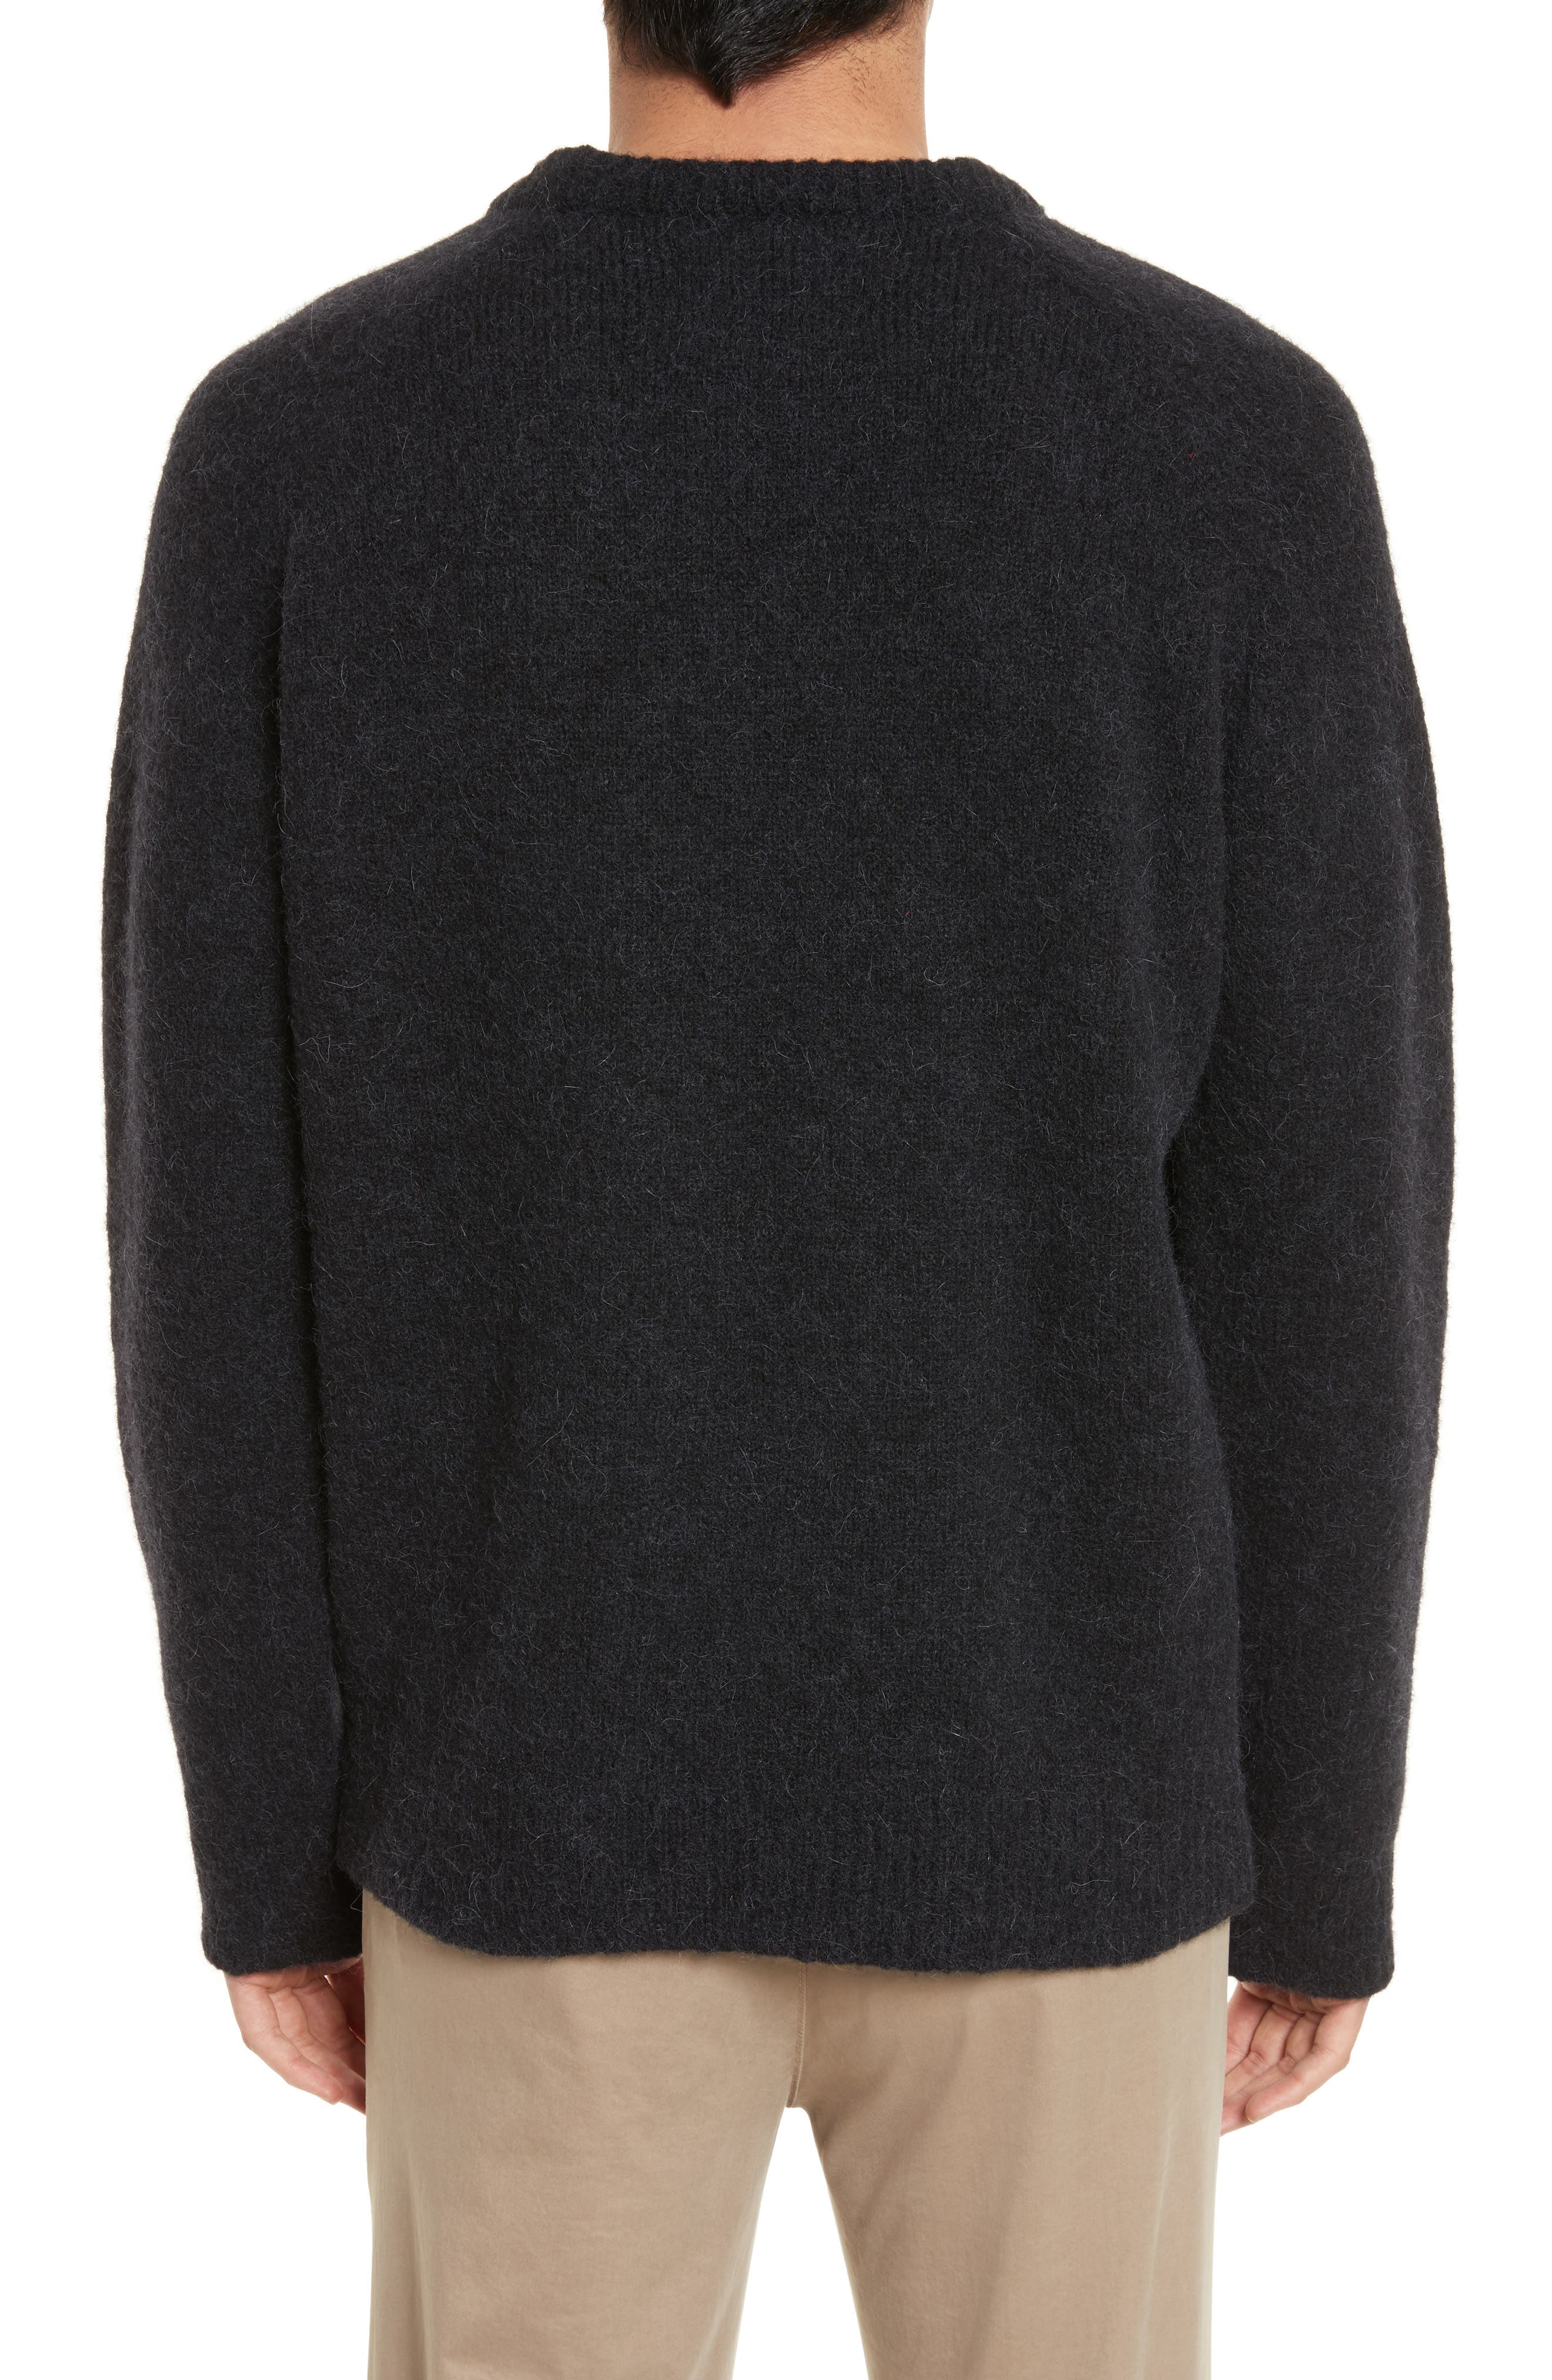 Wool Blend Crewneck Sweater,                             Alternate thumbnail 2, color,                             Black